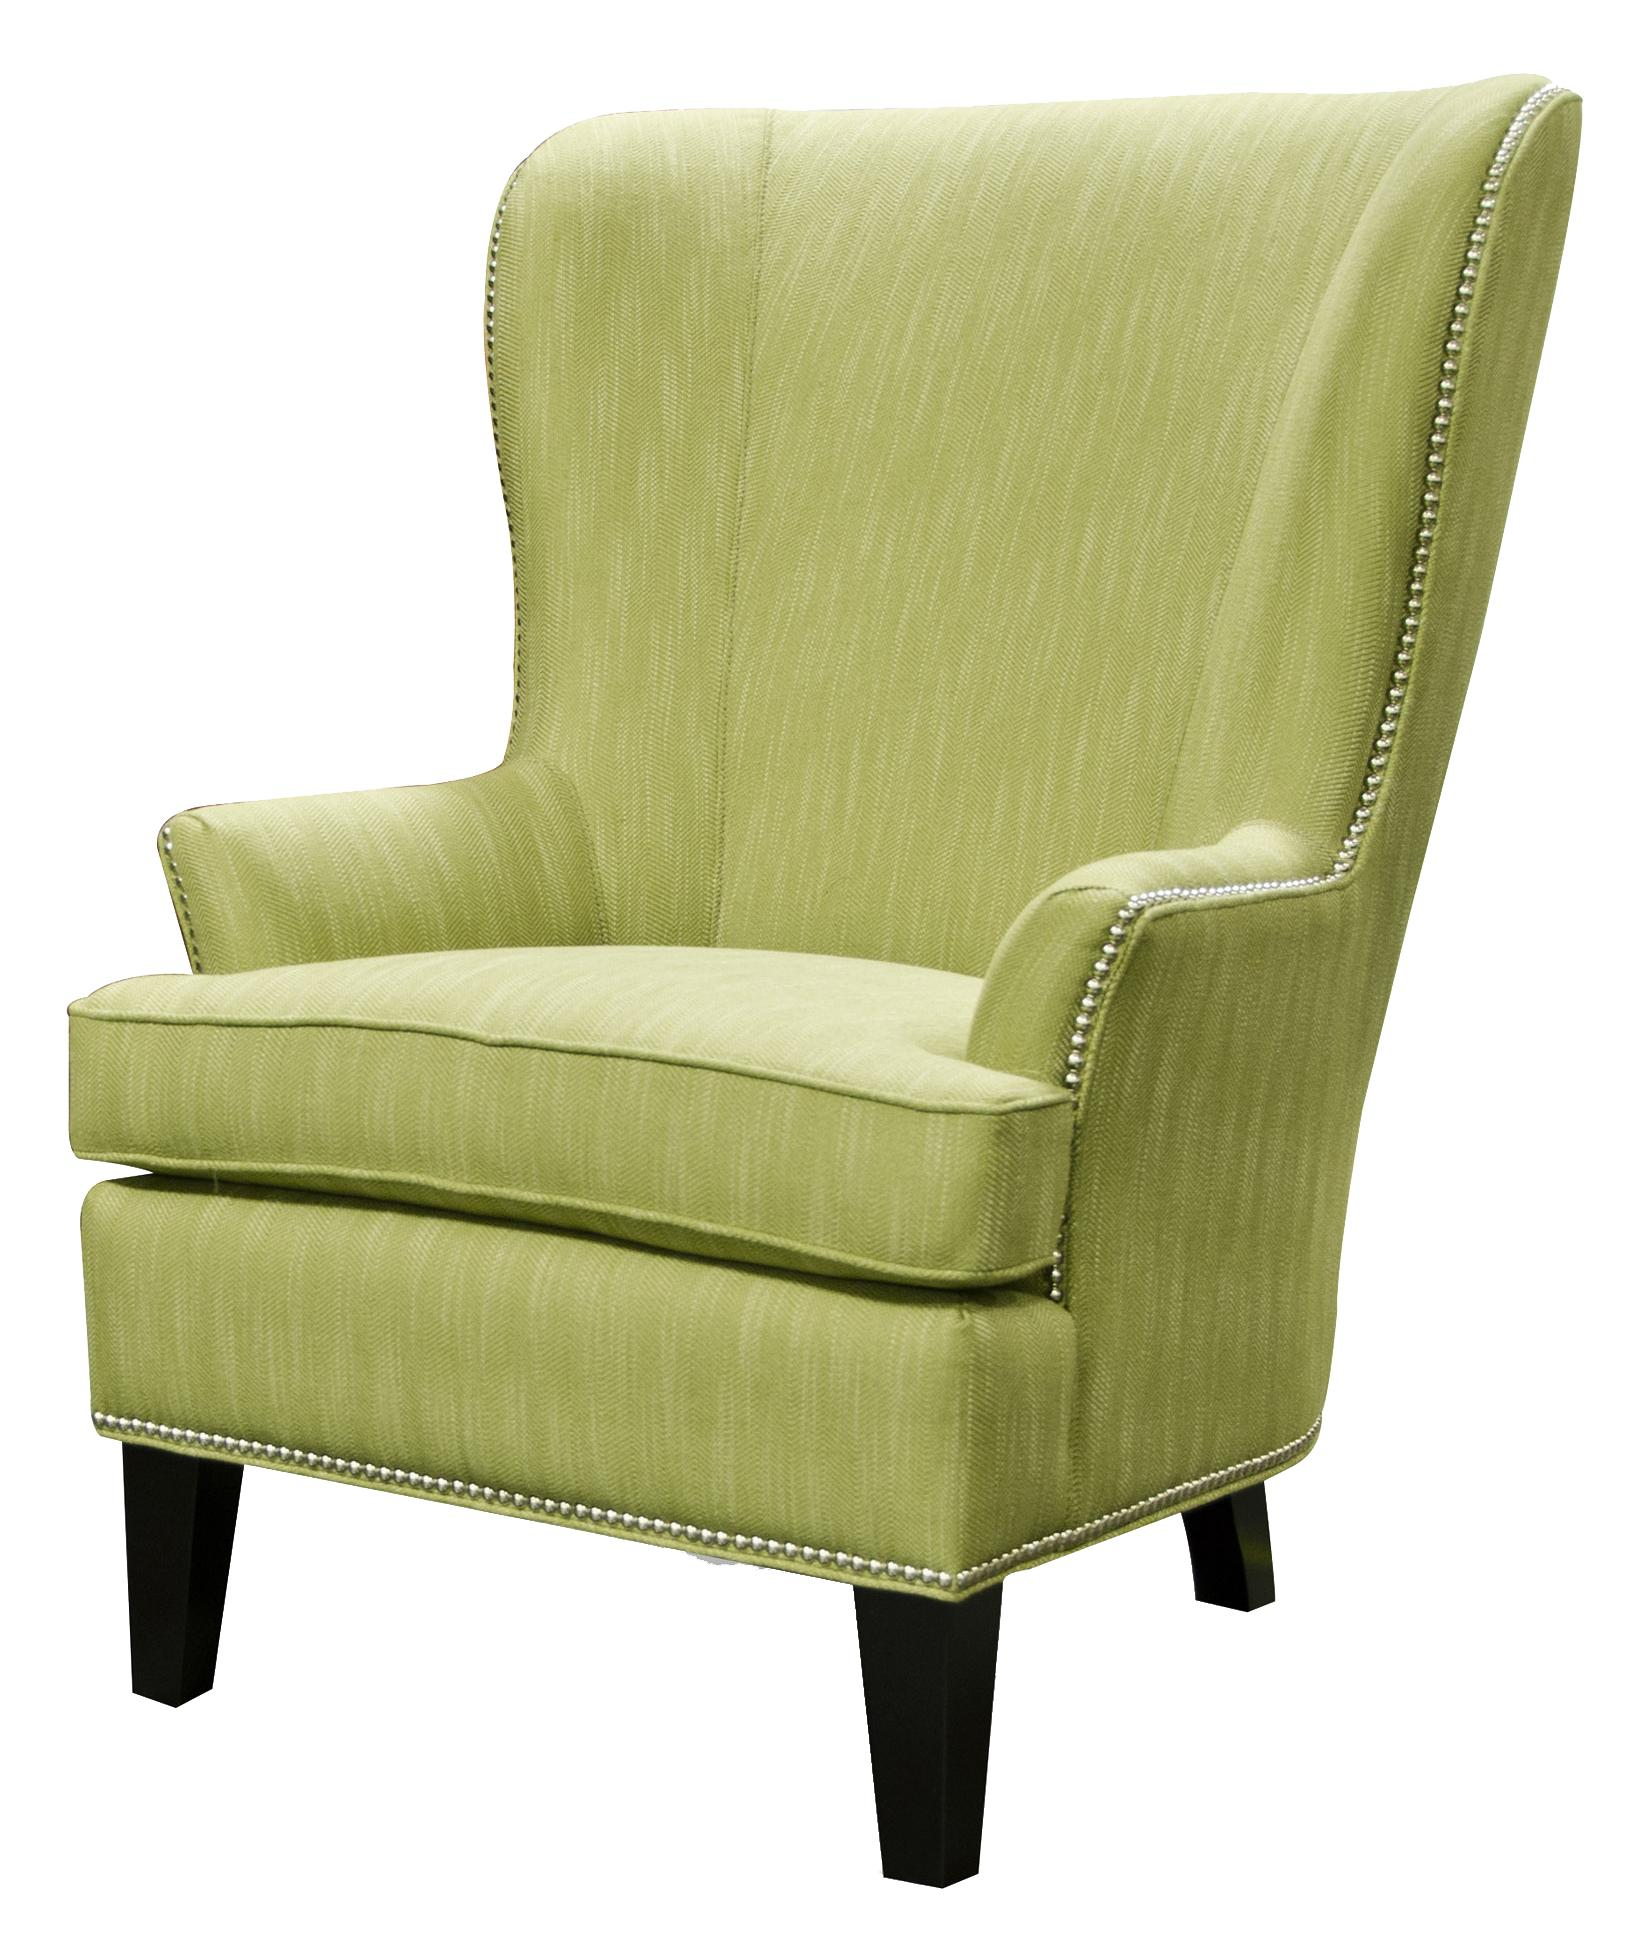 Saylor Wing Chair by England at SuperStore